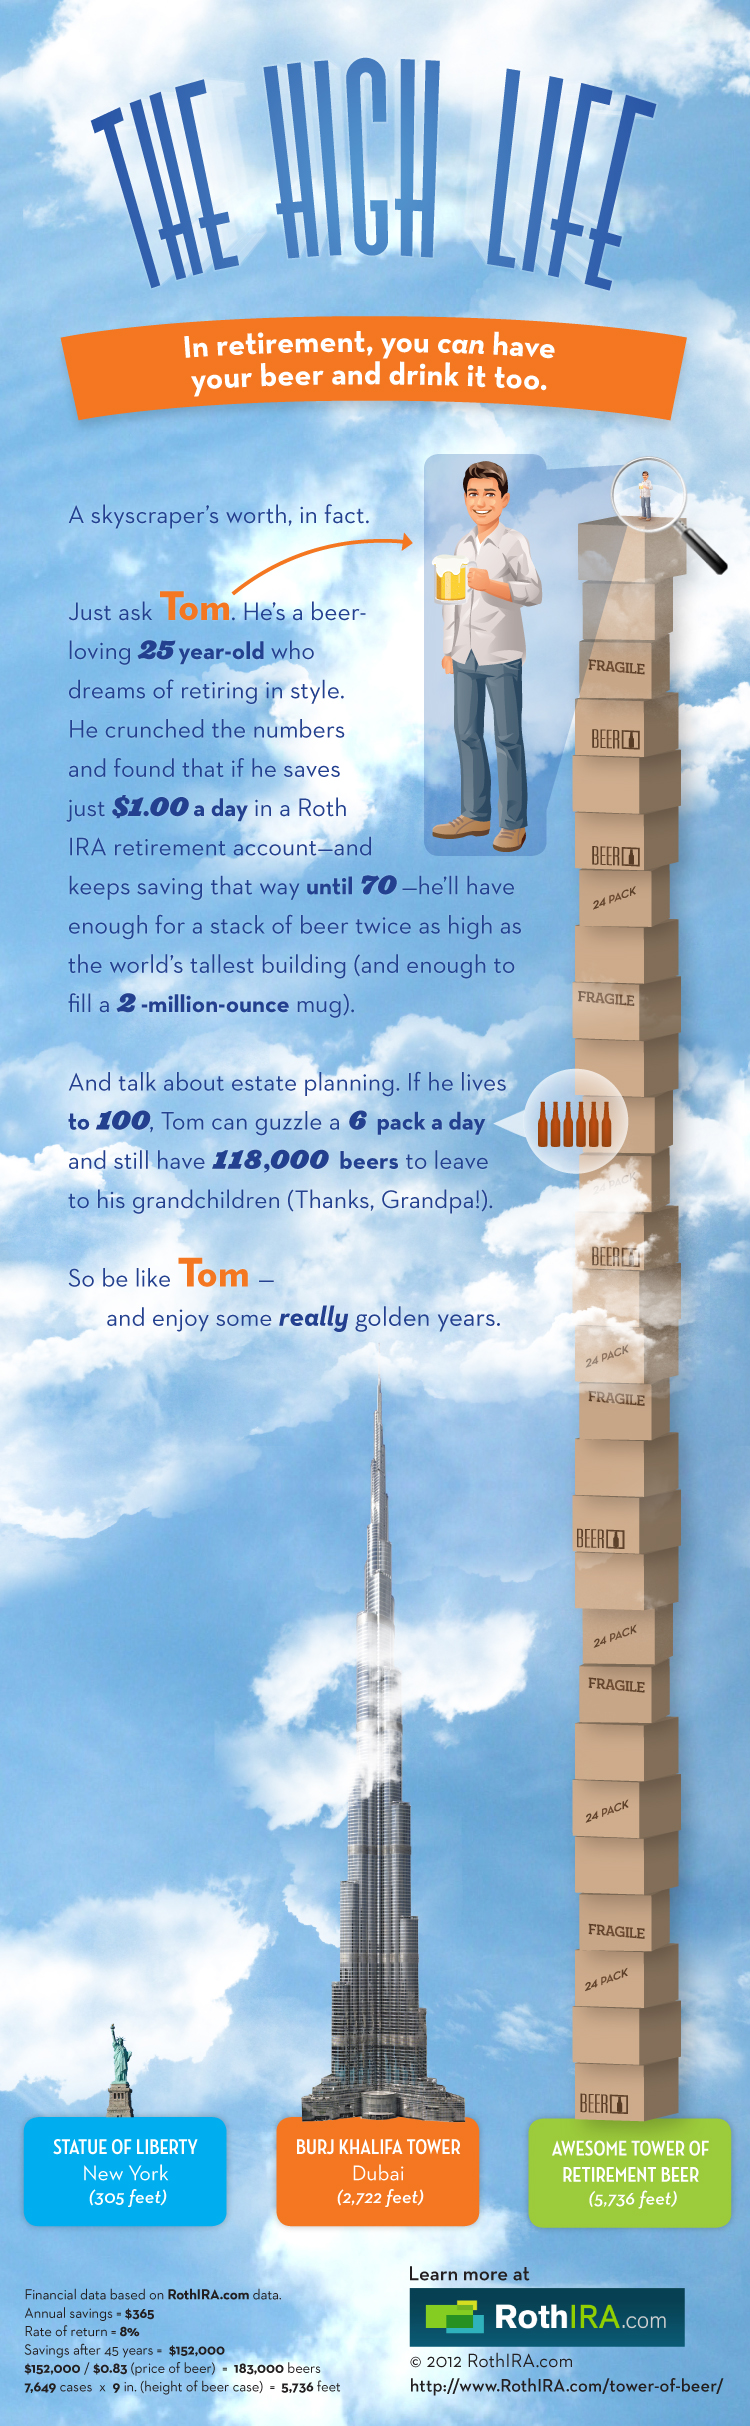 The Awesome Tower of Beer! infographic